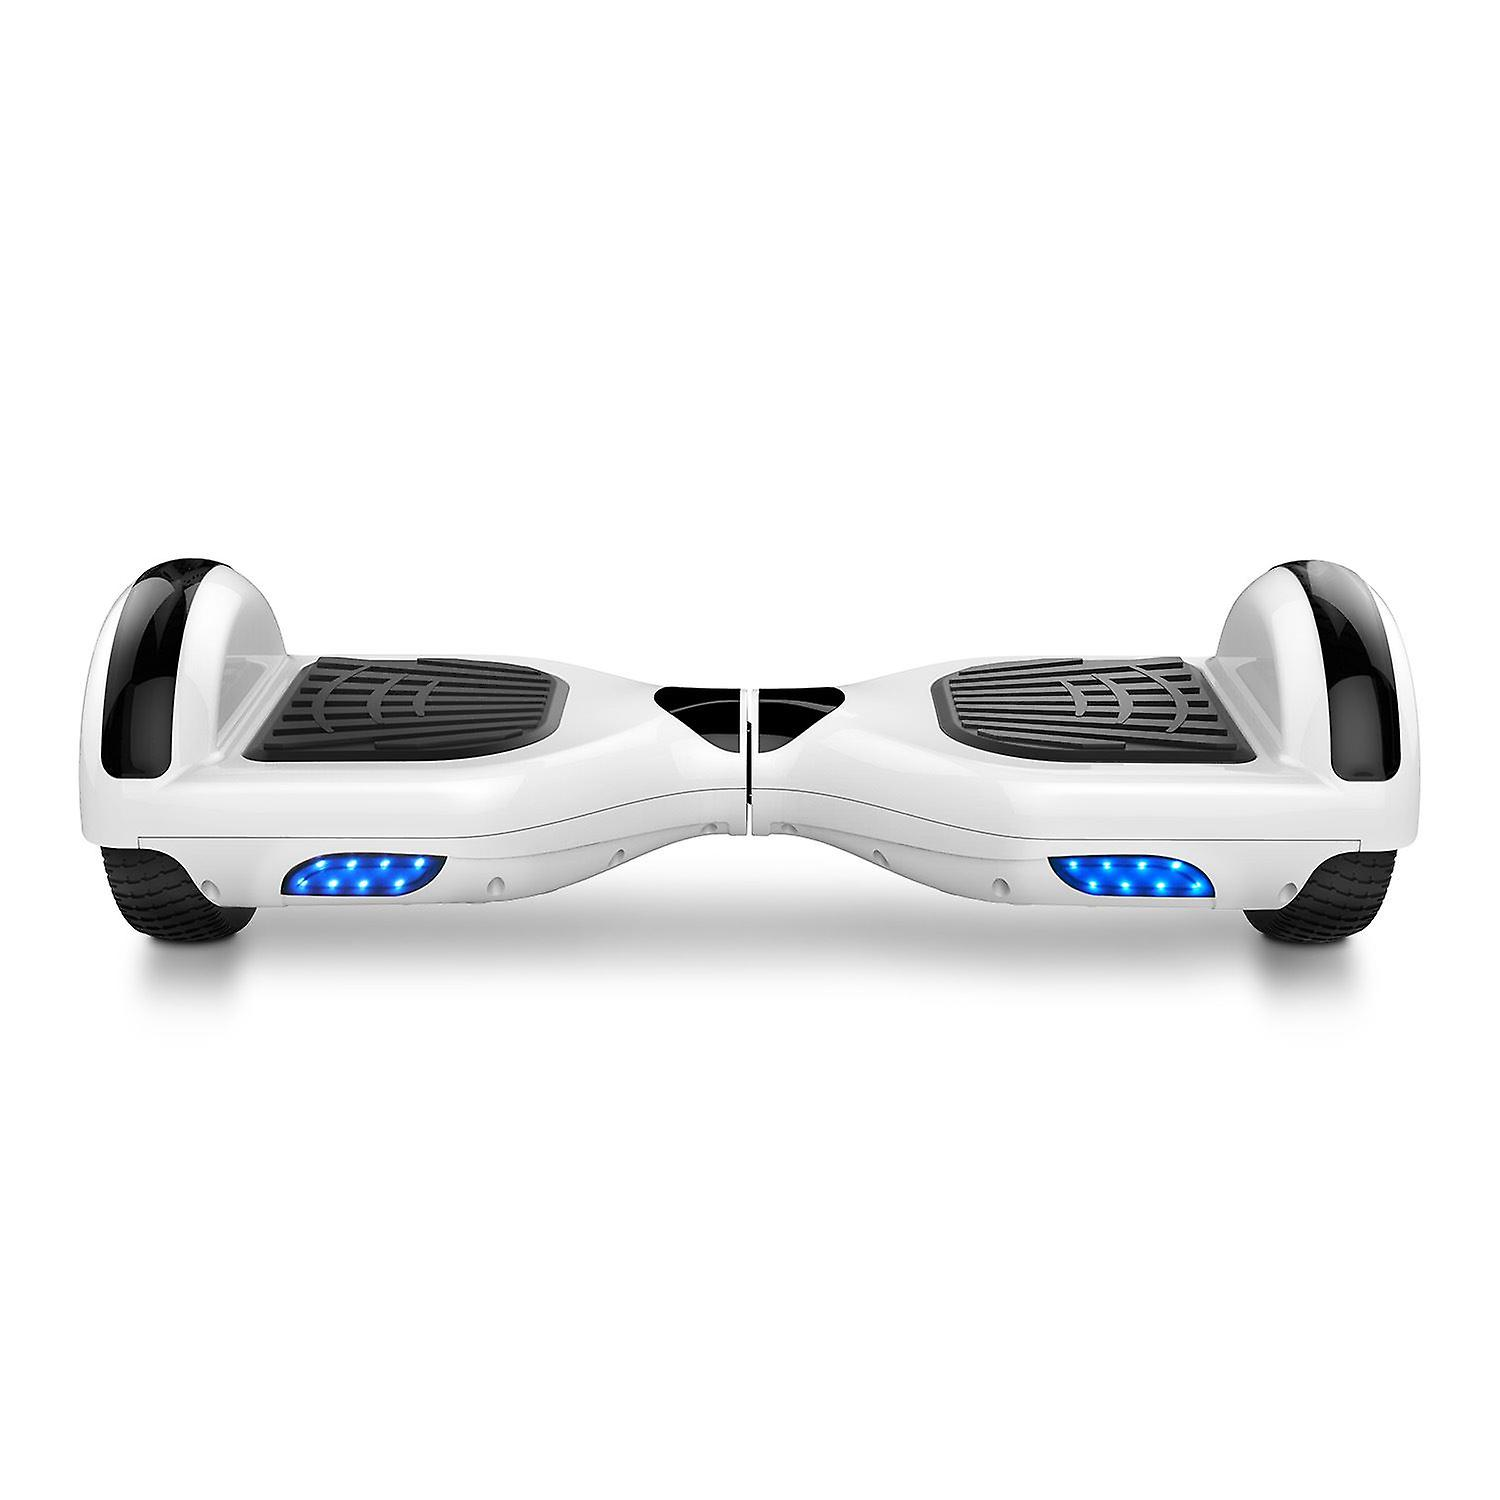 Mega Motion Hoverboard - Self Balanced Electric Scooter - e-cooter- with RGB LED on Wheels - Trendy LED-Bluetooth Decoration - Speakers - 700W Motor - segway with LED